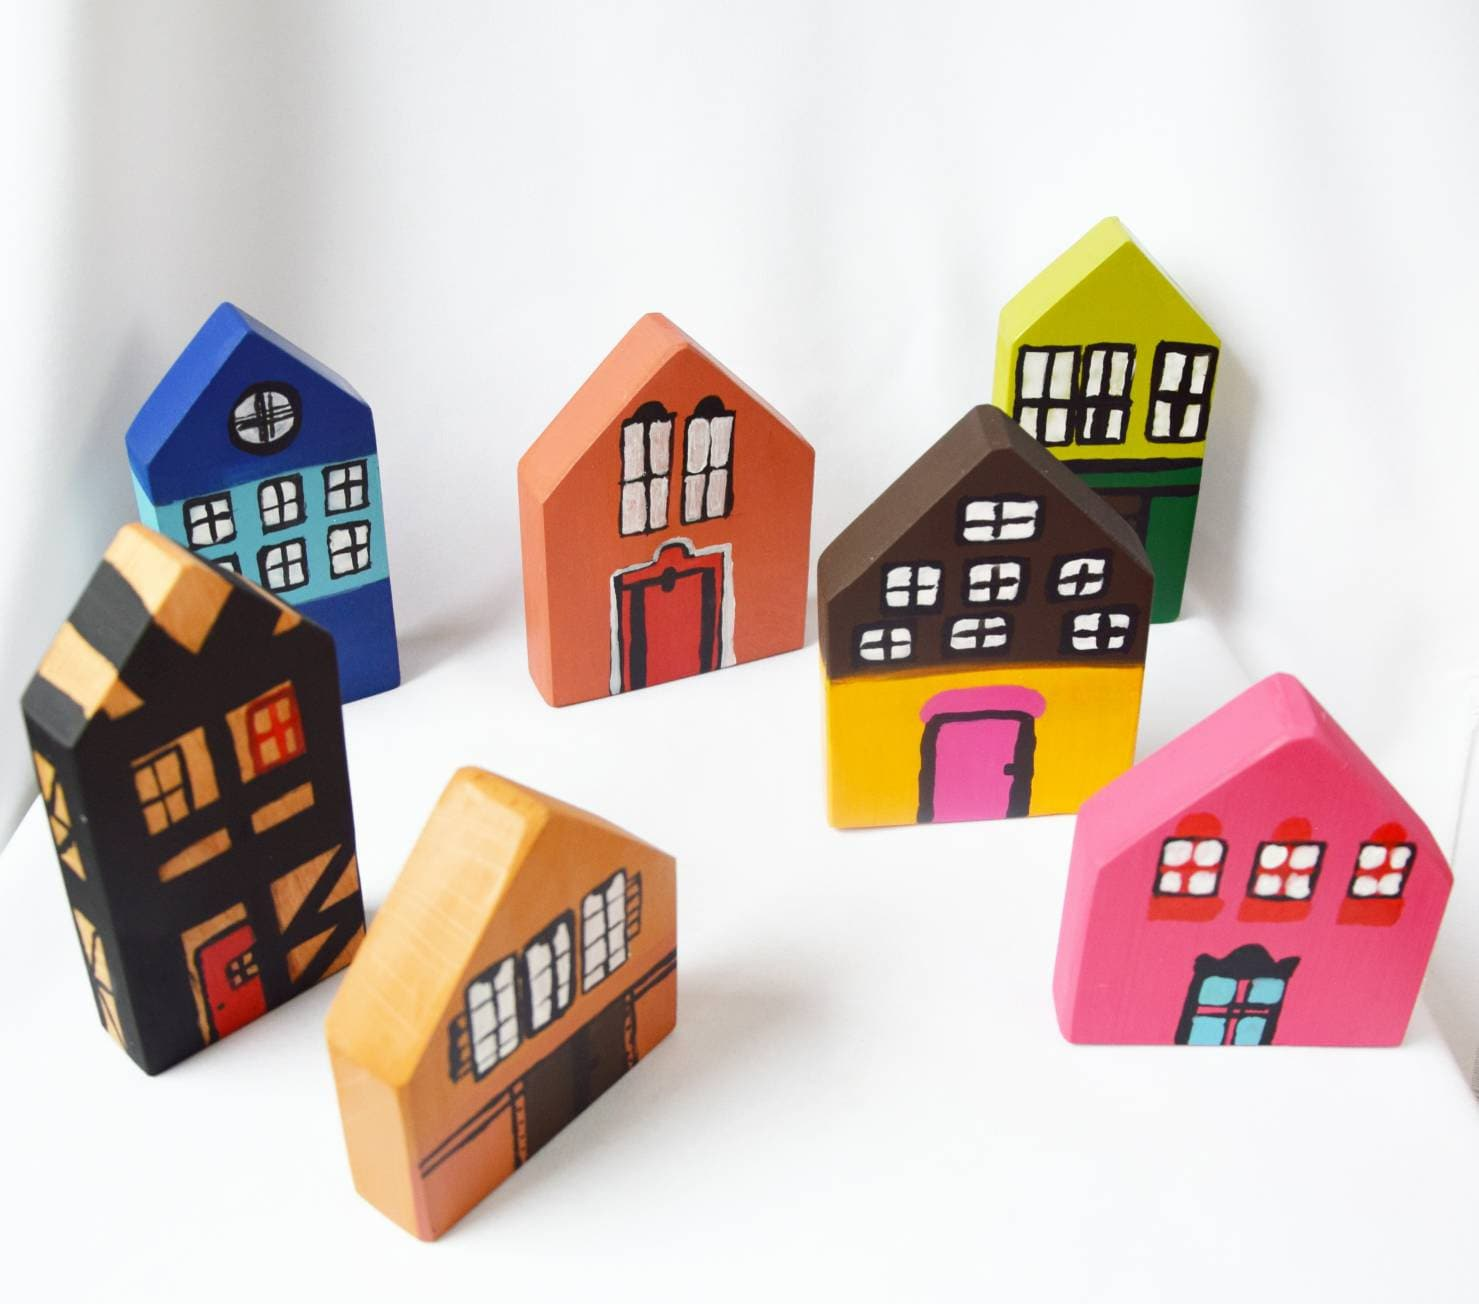 Wooden house, house of choice wooden toy, wooden decor, open ended play, imaginative play, waldorf inspired toy, decorative house,